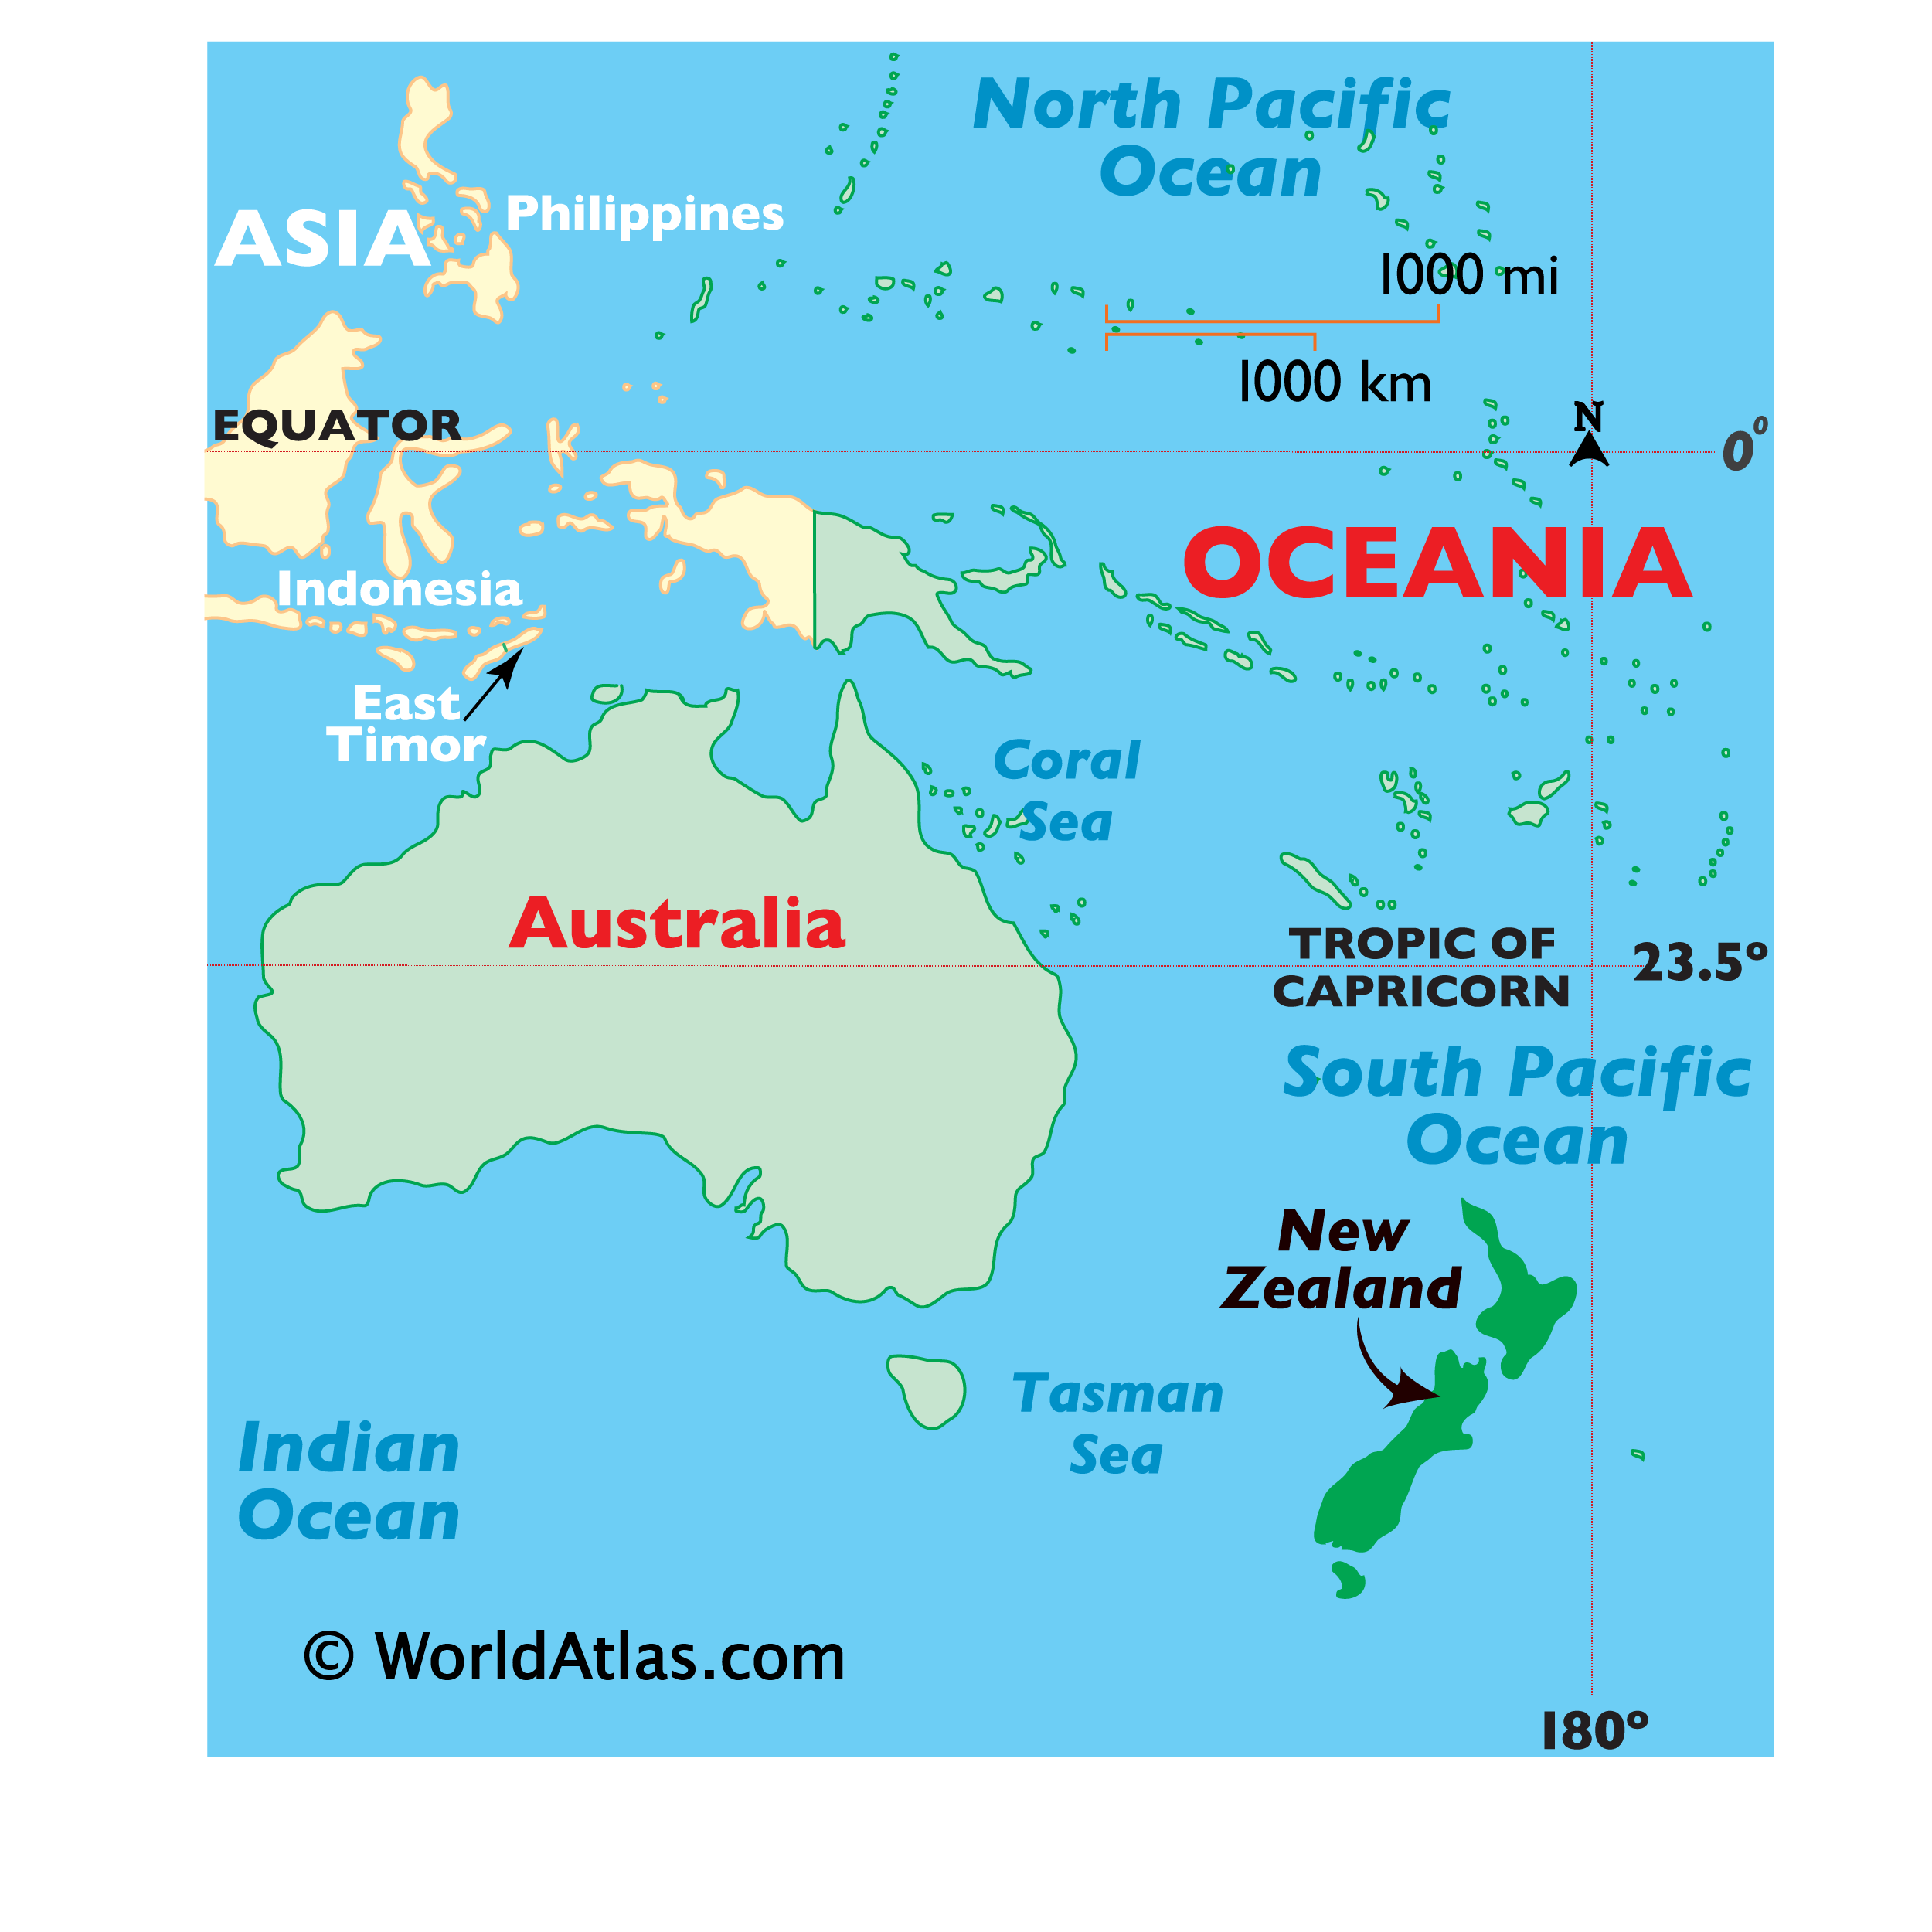 Map showing location of New Zealand in the world.